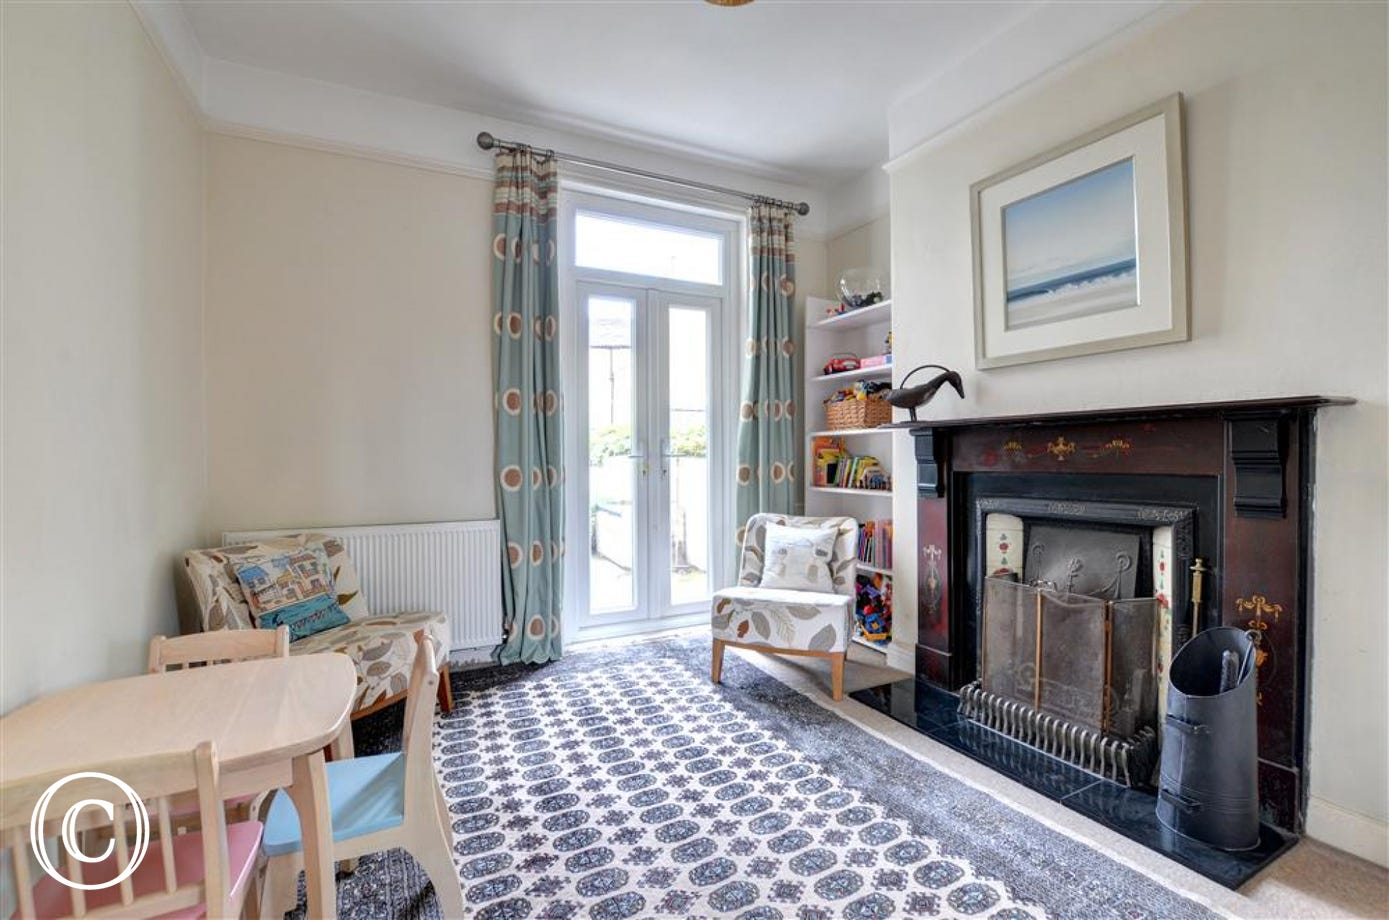 This Sitting Room can double as a children's playroom. It has French doors which lead out to the rear Garden area.